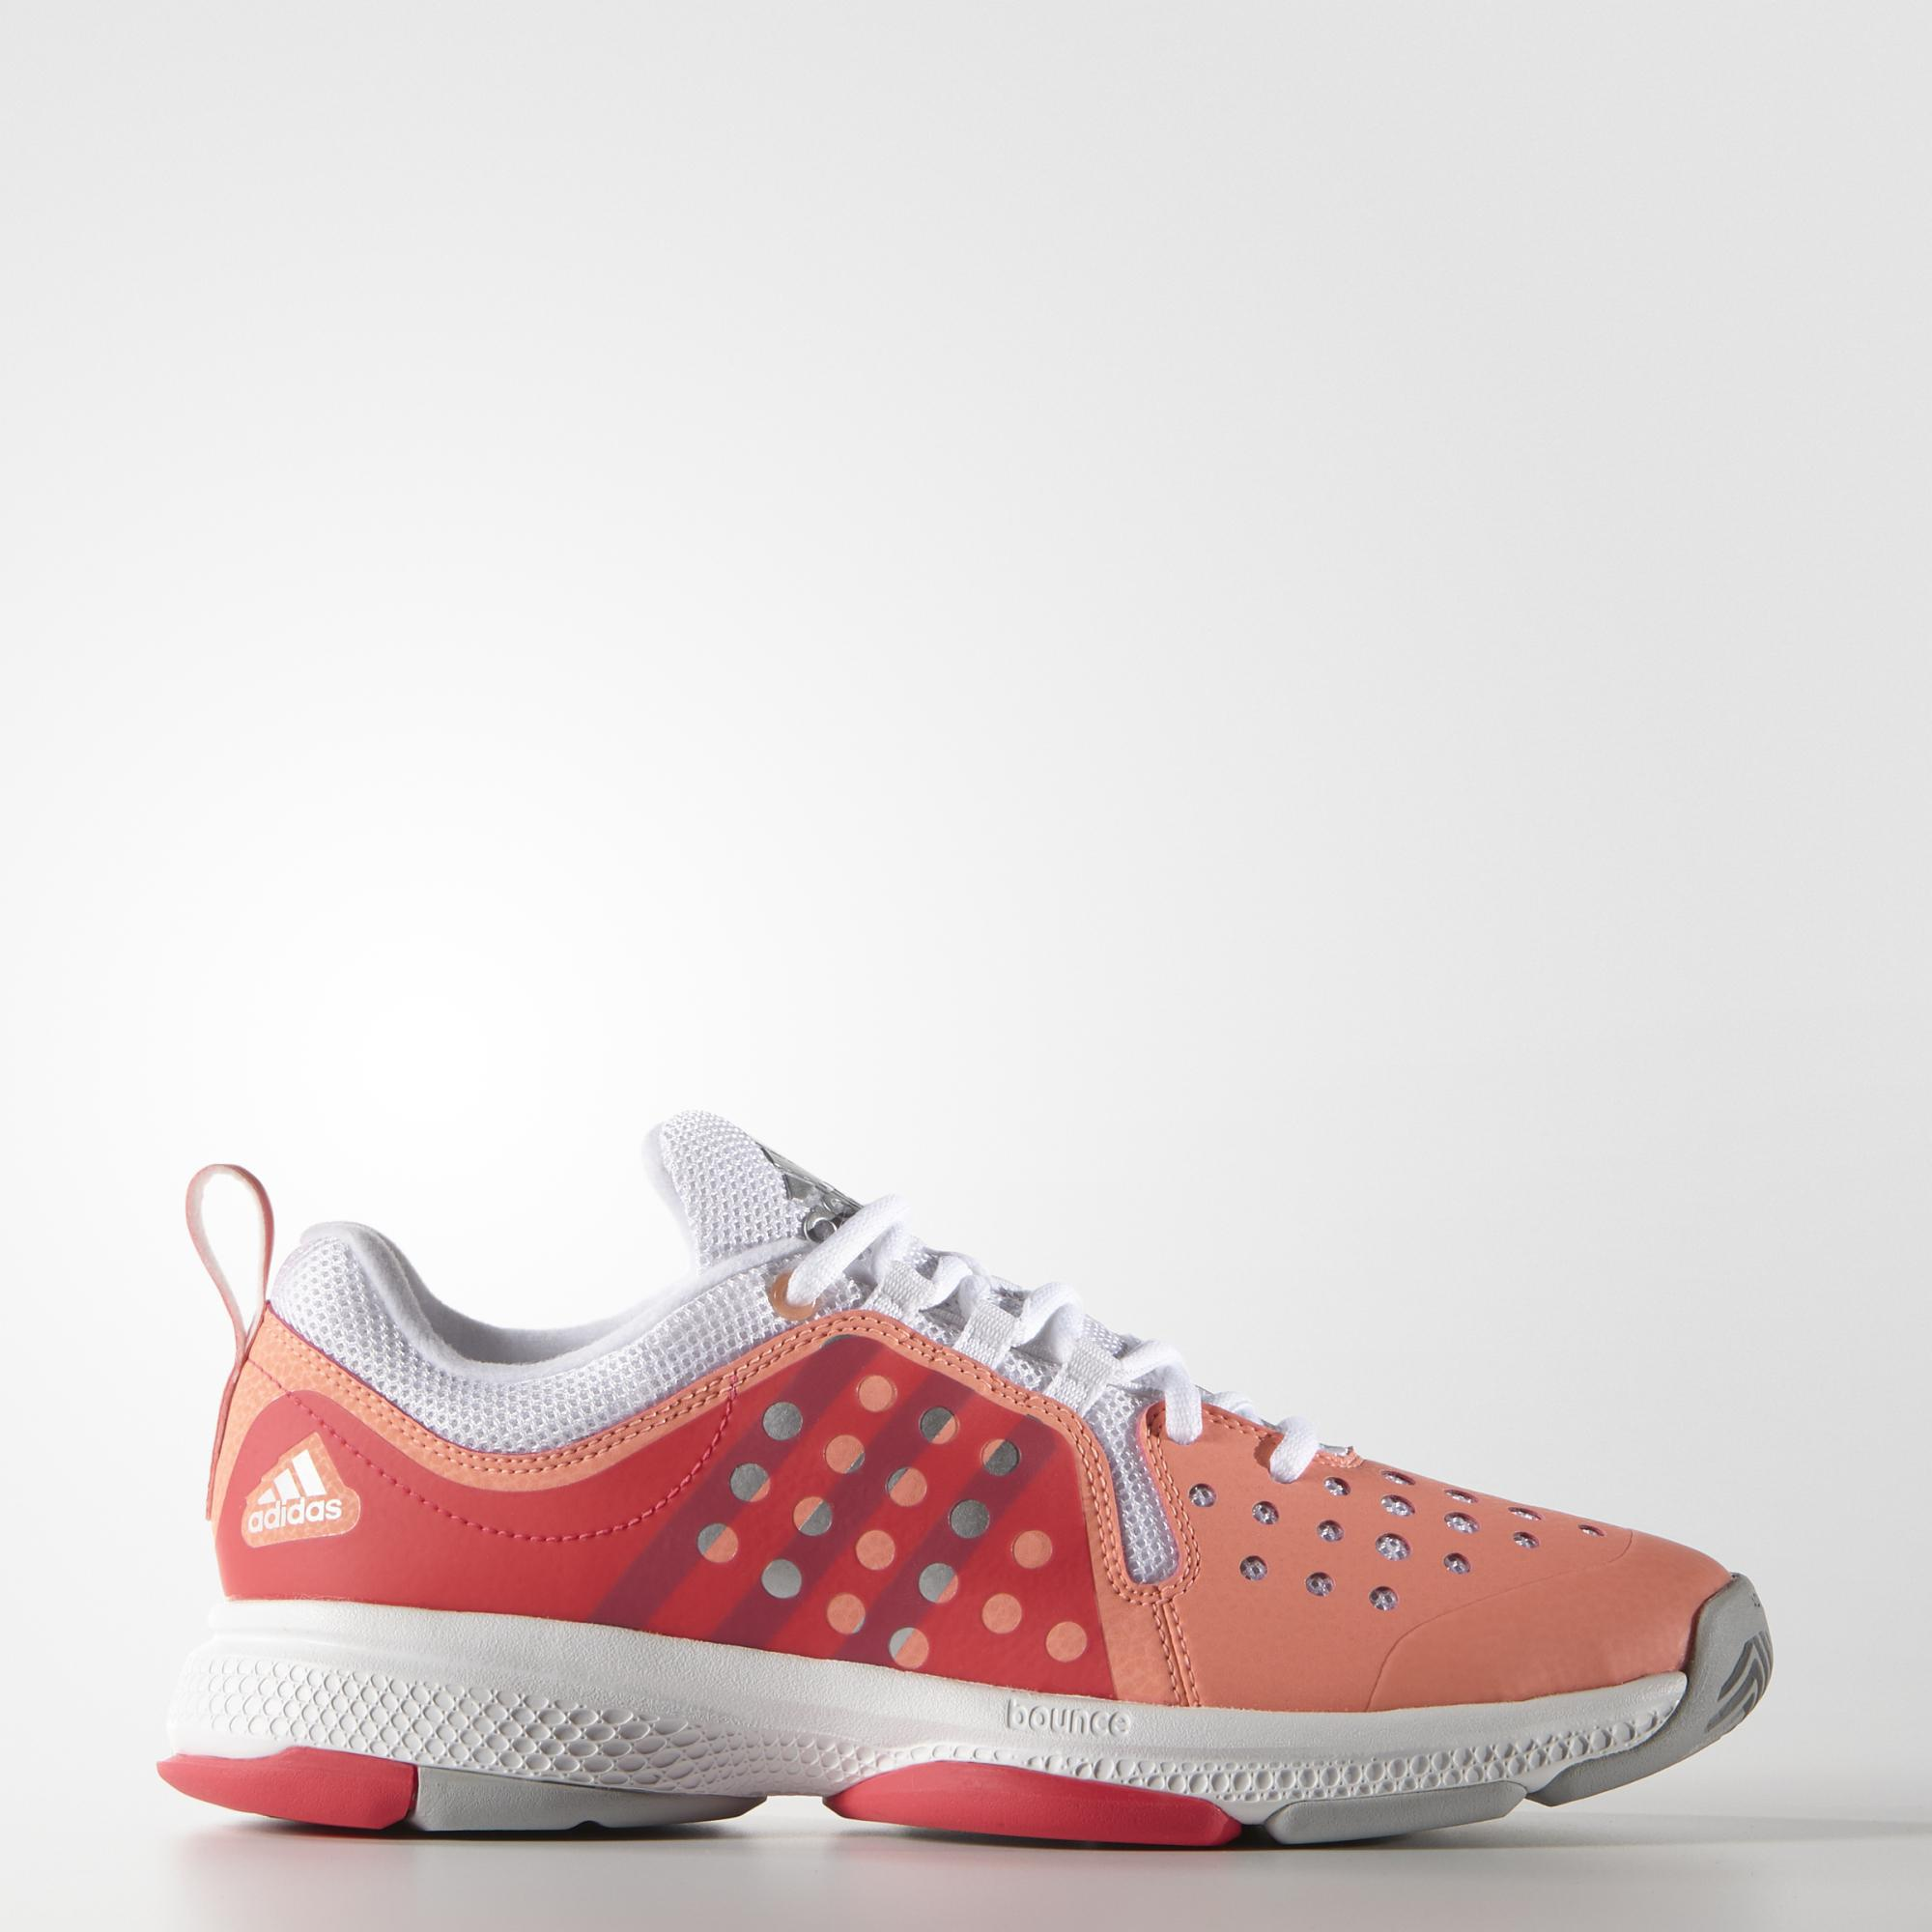 Barricade Tennis Shoes Uk